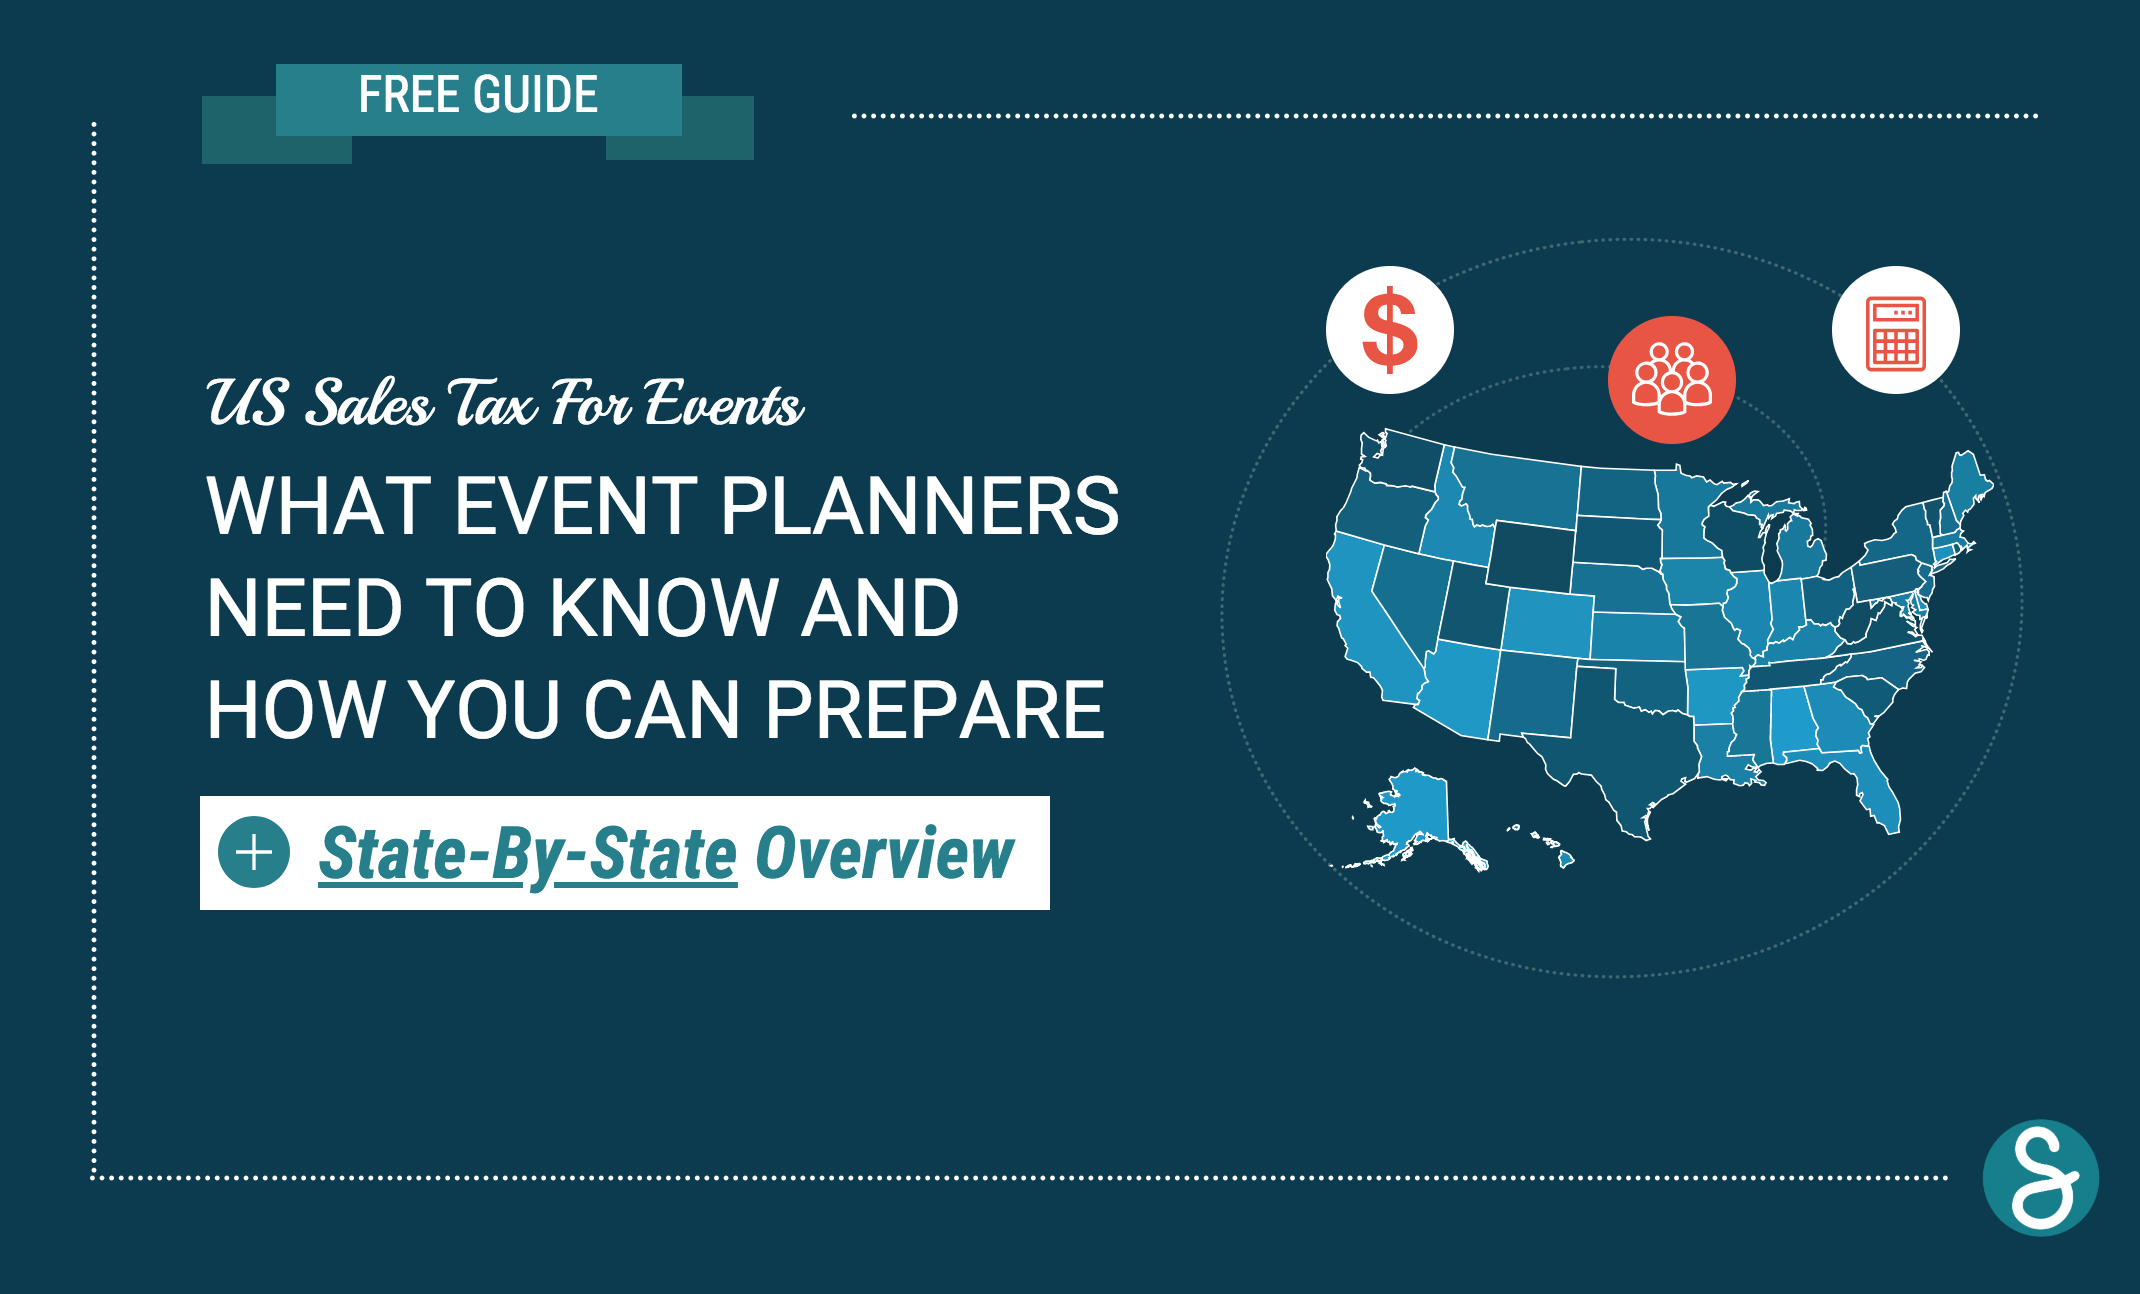 US Sales Tax For Events - What Event Planners Need To Know-1